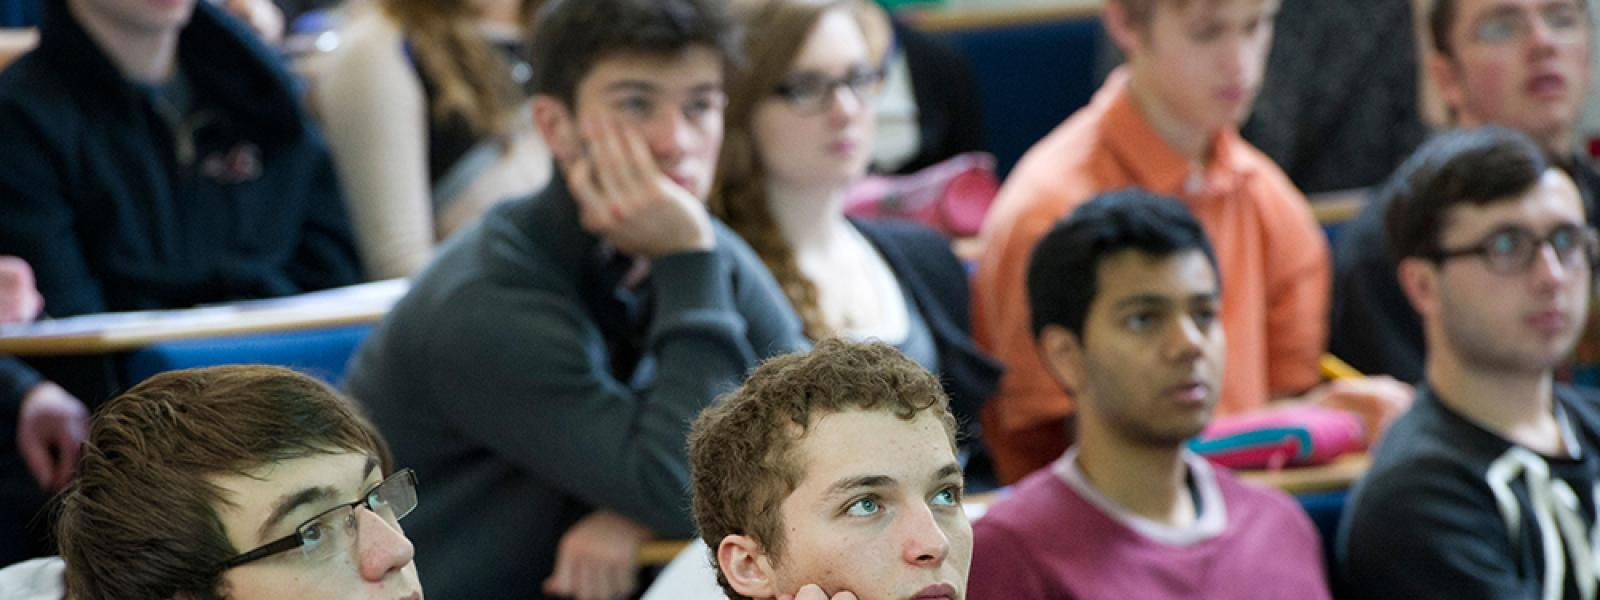 Students in a lecture at Oxford University in science